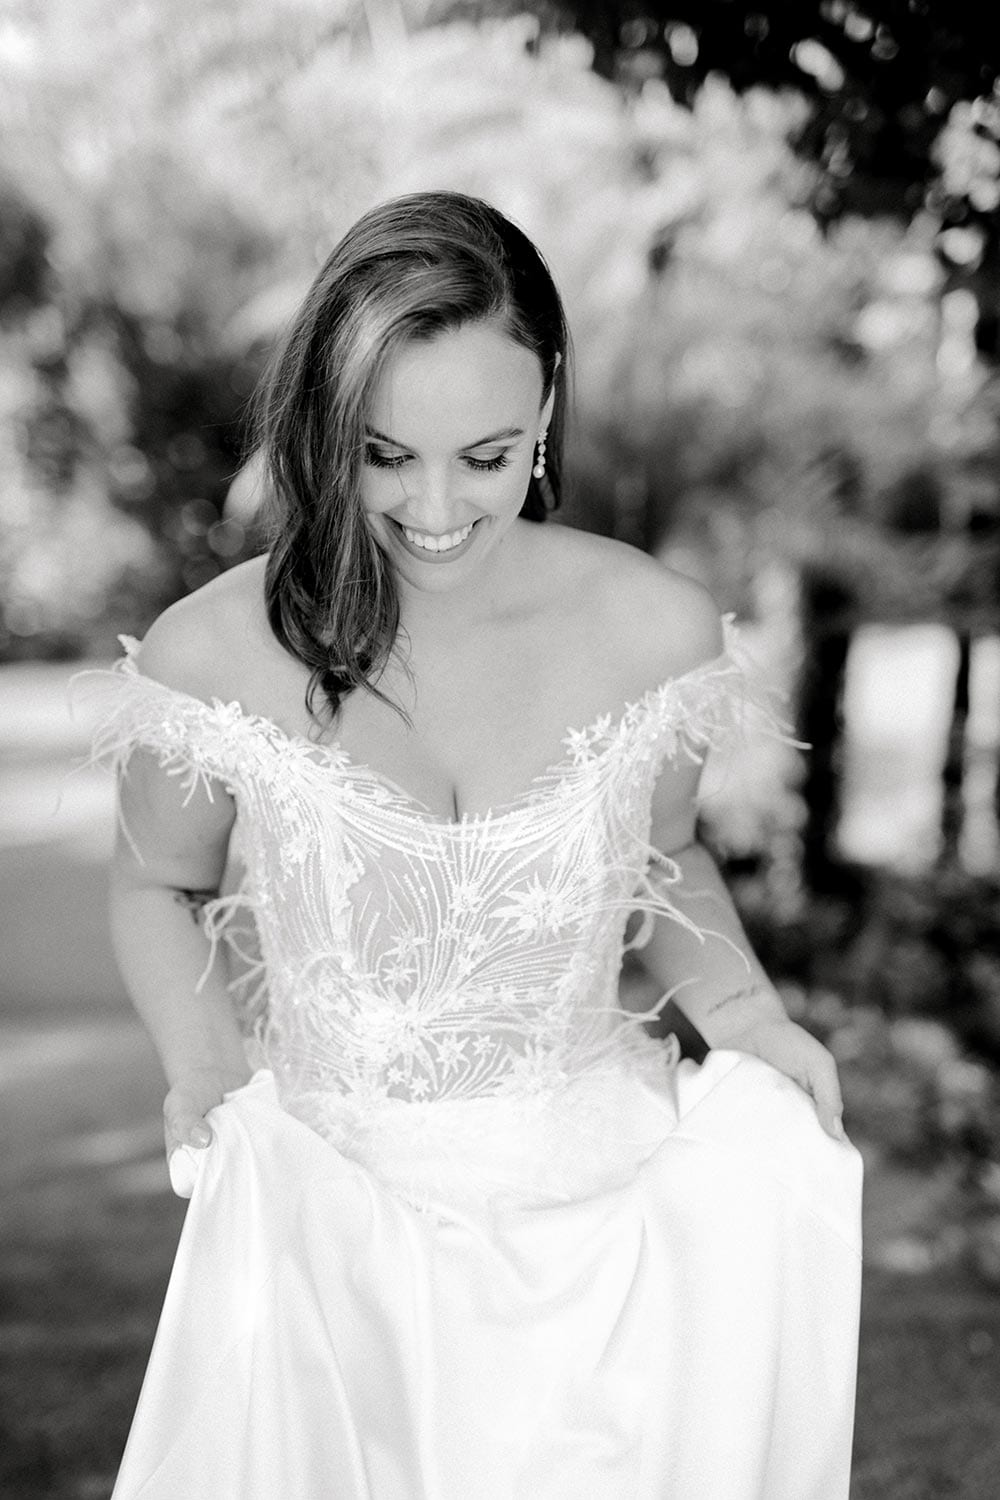 Genevive Wedding Dress from Vinka Design. The soft off-the-shoulder sleeves & semi-sheer structured bodice with hand-appliqued lace and a soft satin skirt make this a romantic & dreamy wedding dress. Top half detail of dress showing off the off-the-shoulder bodice in black and white, photographed at Tui Hills.